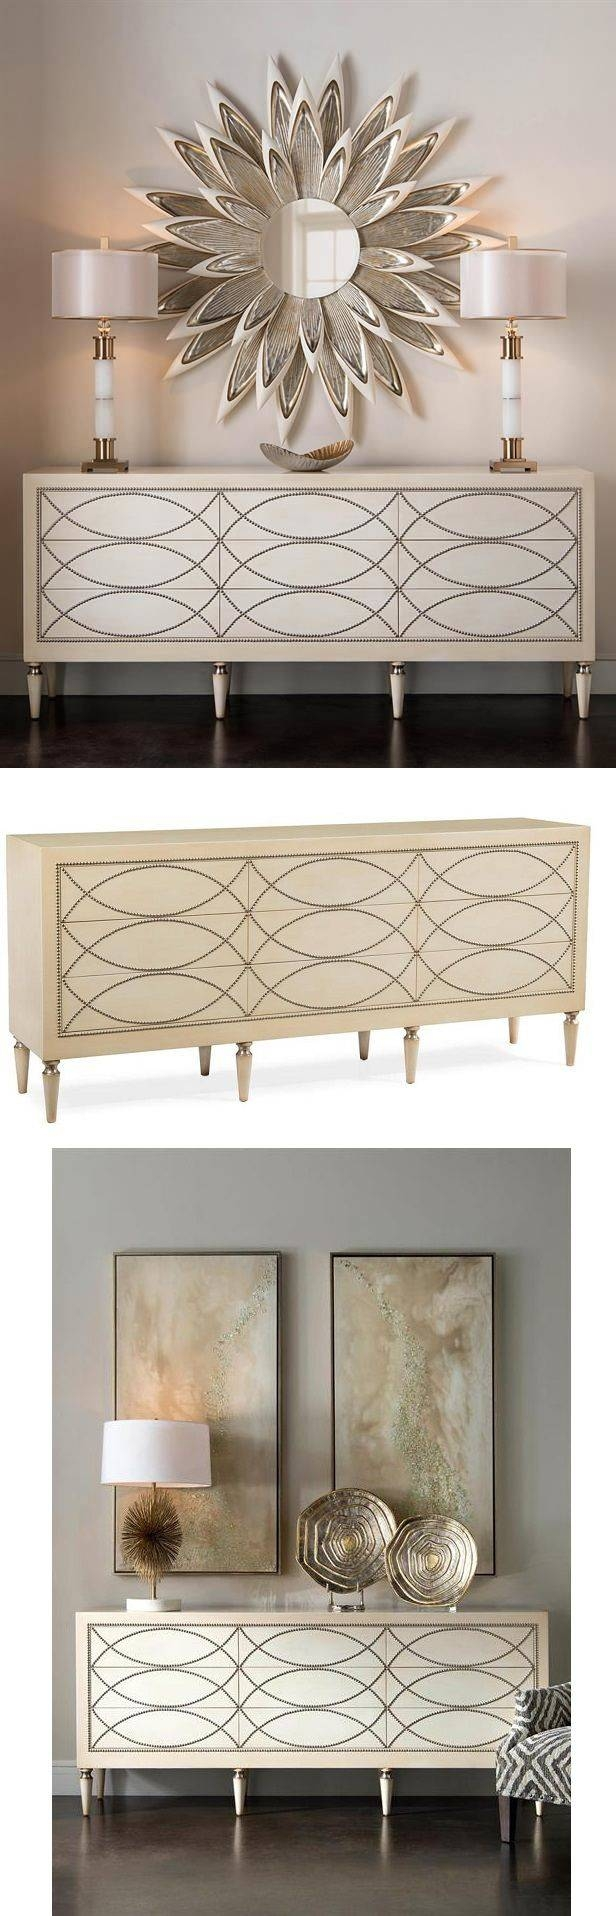 Best 25+ Dining Room Sideboard Ideas On Pinterest | Dining Room in Modern Living Room Sideboards (Image 6 of 30)